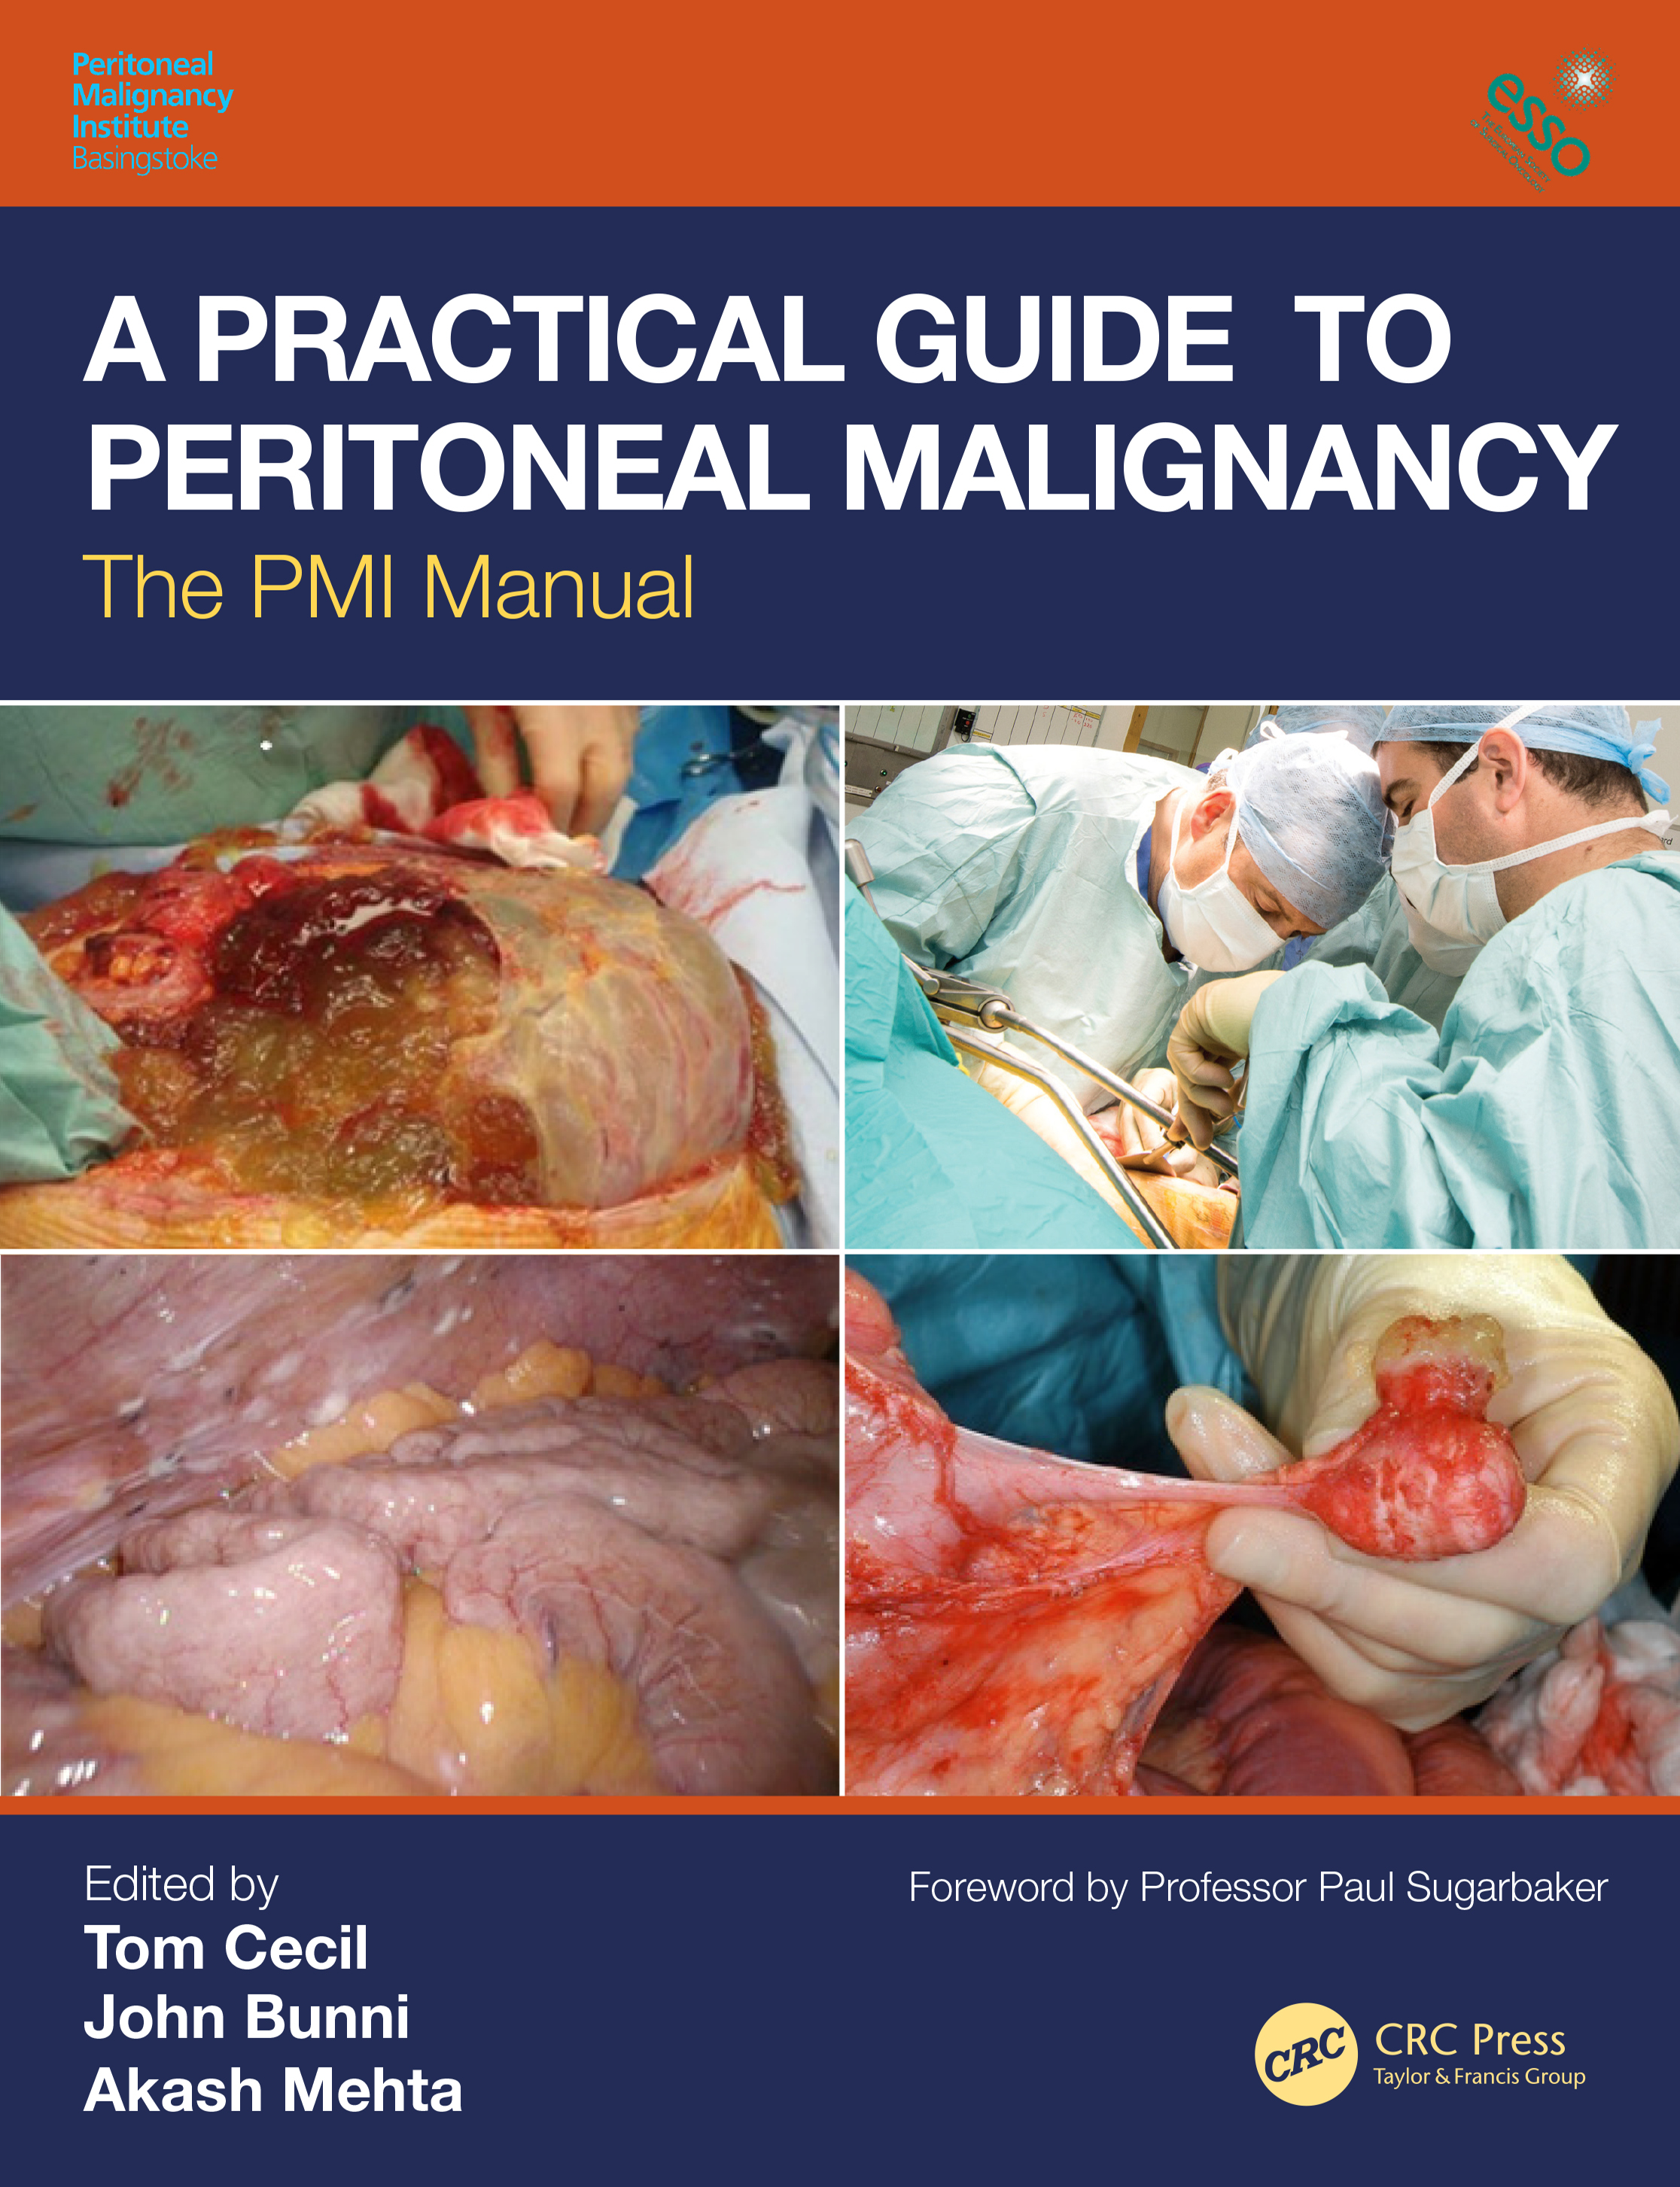 A Practical Guide to Peritoneal Malignancy